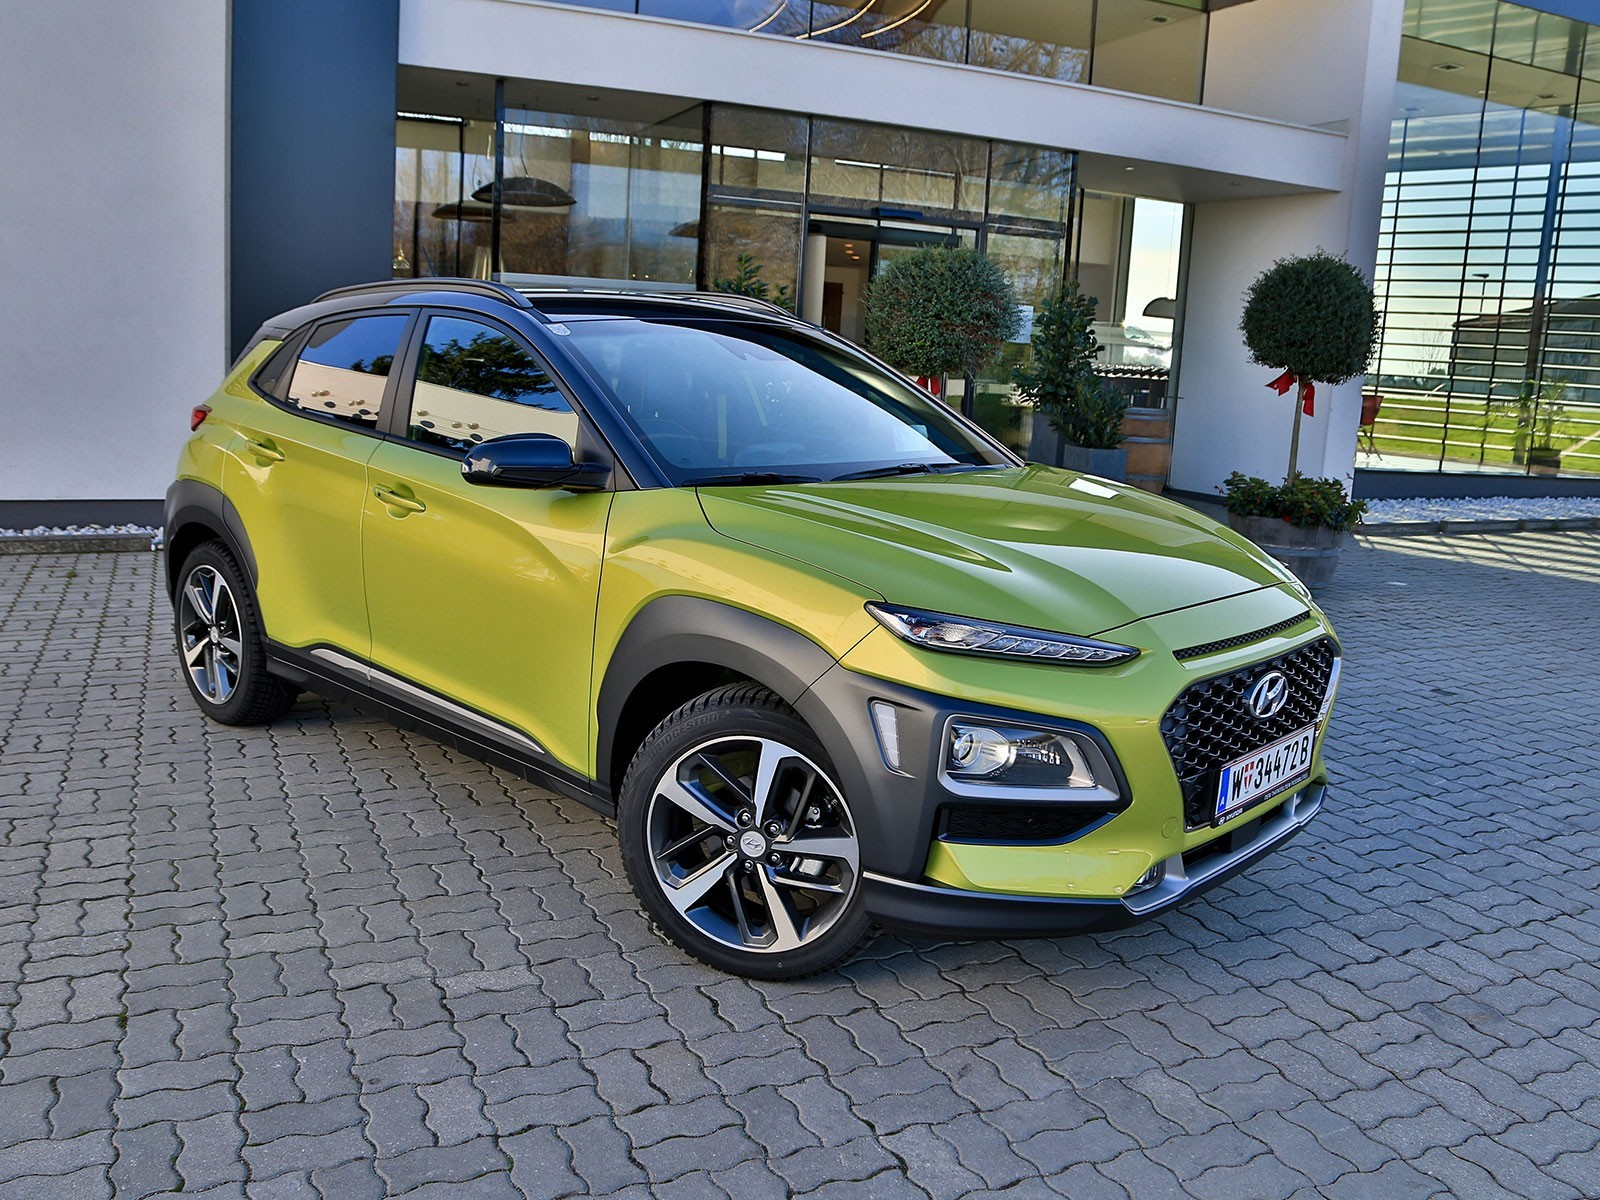 foto hyundai kona style 1 0 t gdi 2wd testbericht vom artikel der neue hyundai kona. Black Bedroom Furniture Sets. Home Design Ideas